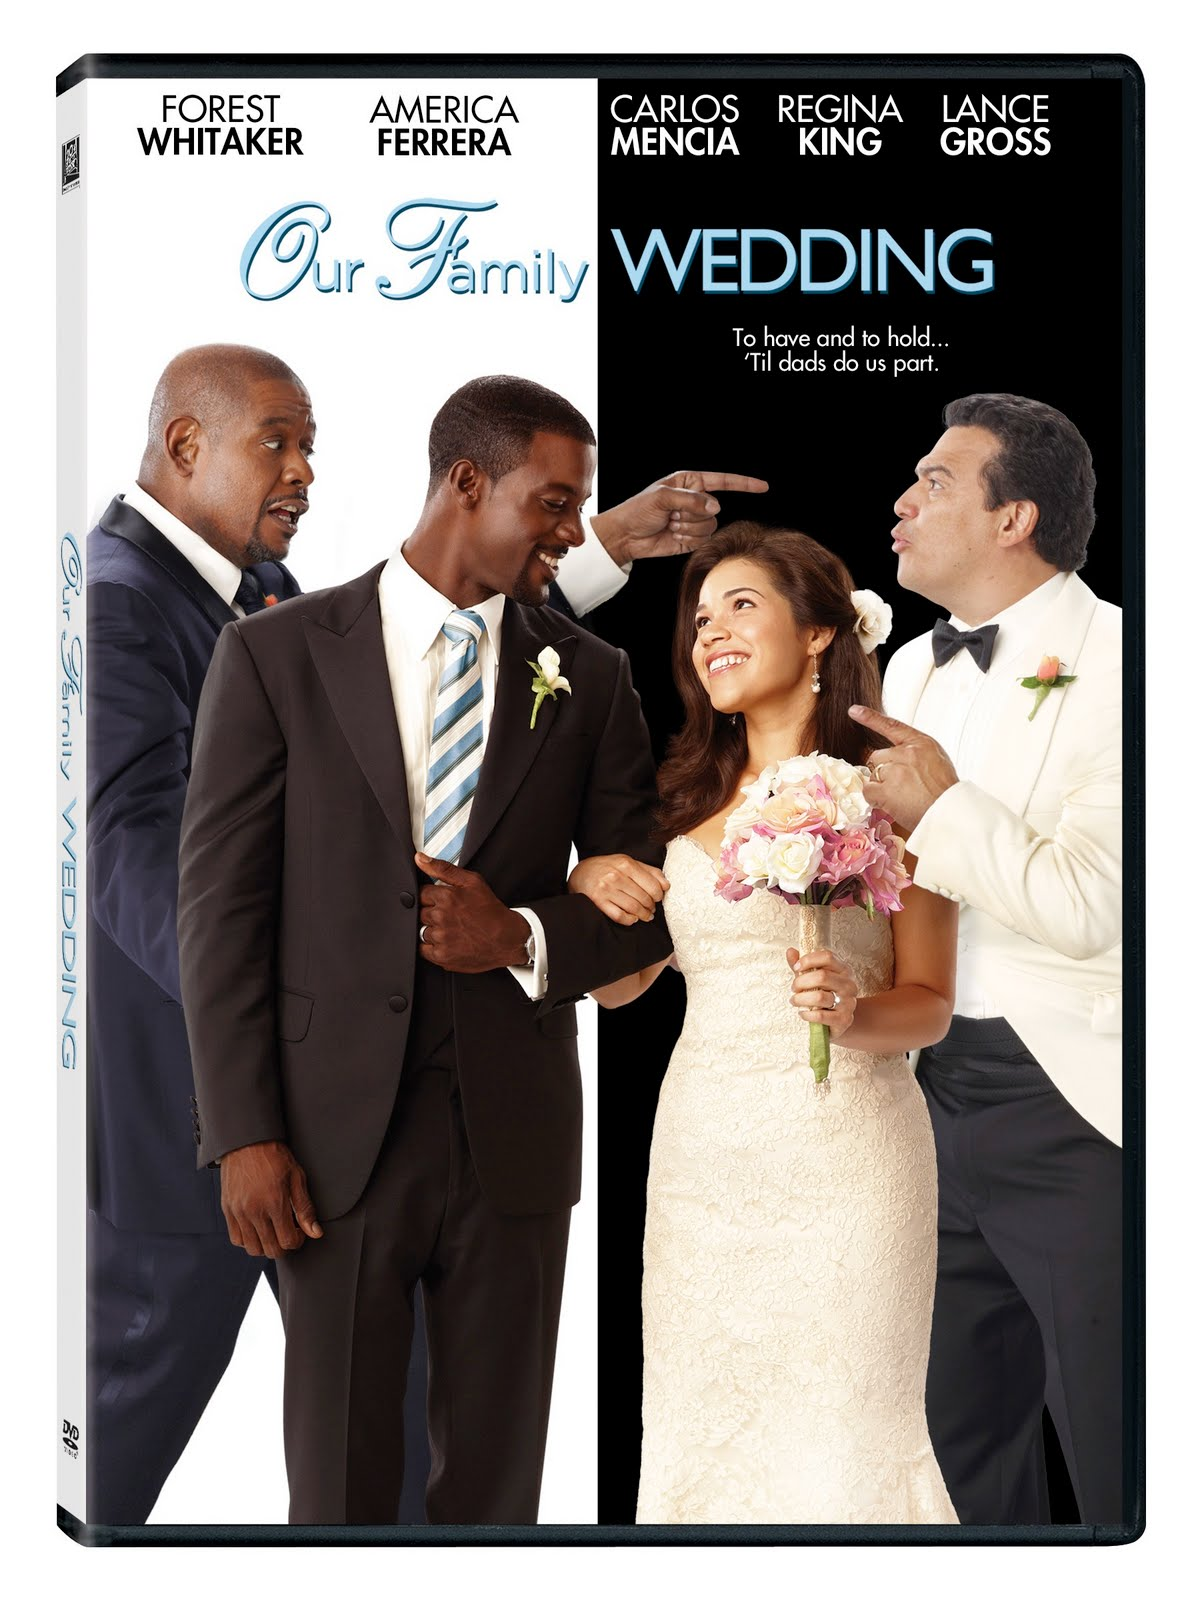 Jam Reviews Our Family Wedding From 20th Century Fox Home Entertainment